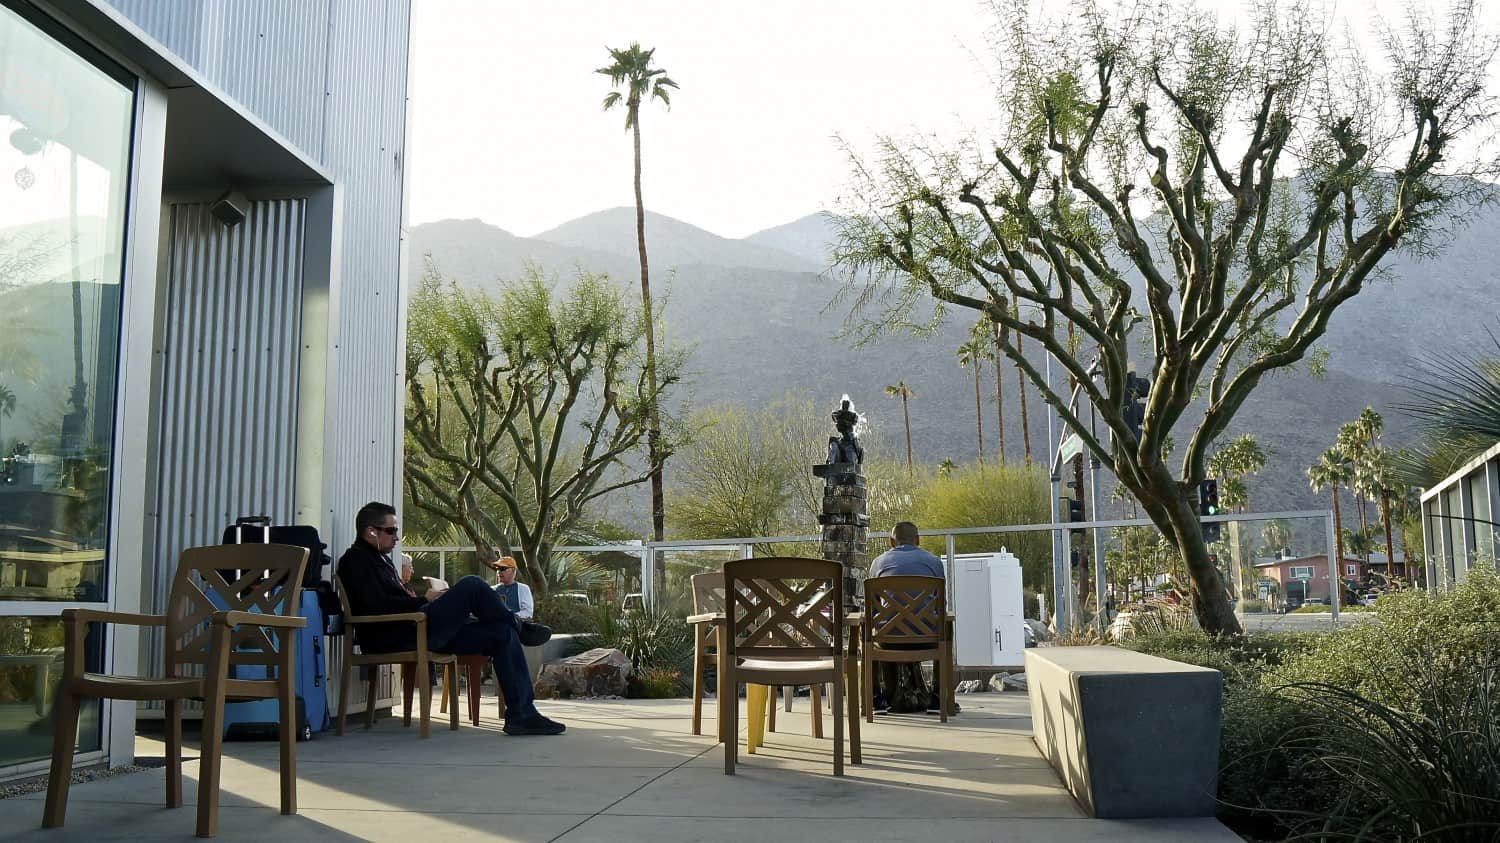 Pet friendly patio at Koffi in Palm Springs, CA